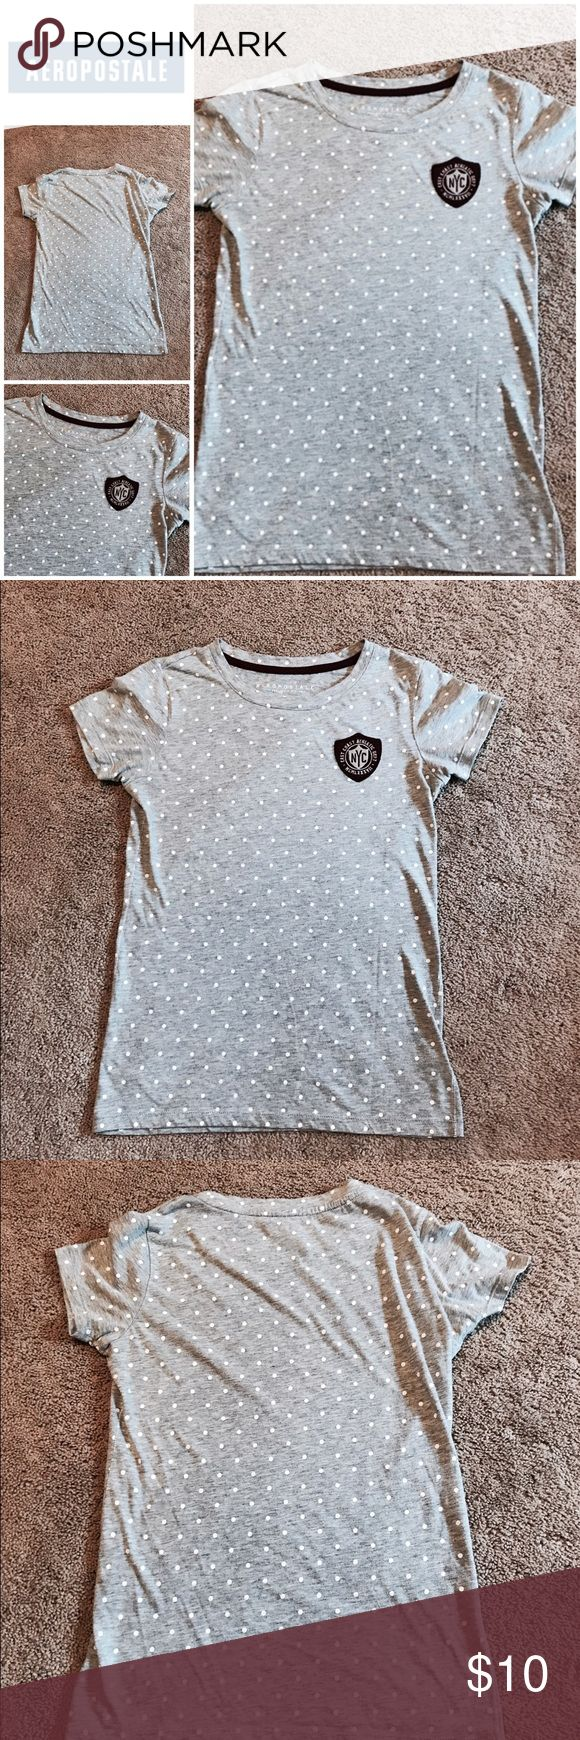 Aeropostale gray and white polka dot t shirt This is an adorable gray with white polka dot t shirt with a patch on the front made by Aeropostale. Aeropostale Tops Tees - Short Sleeve